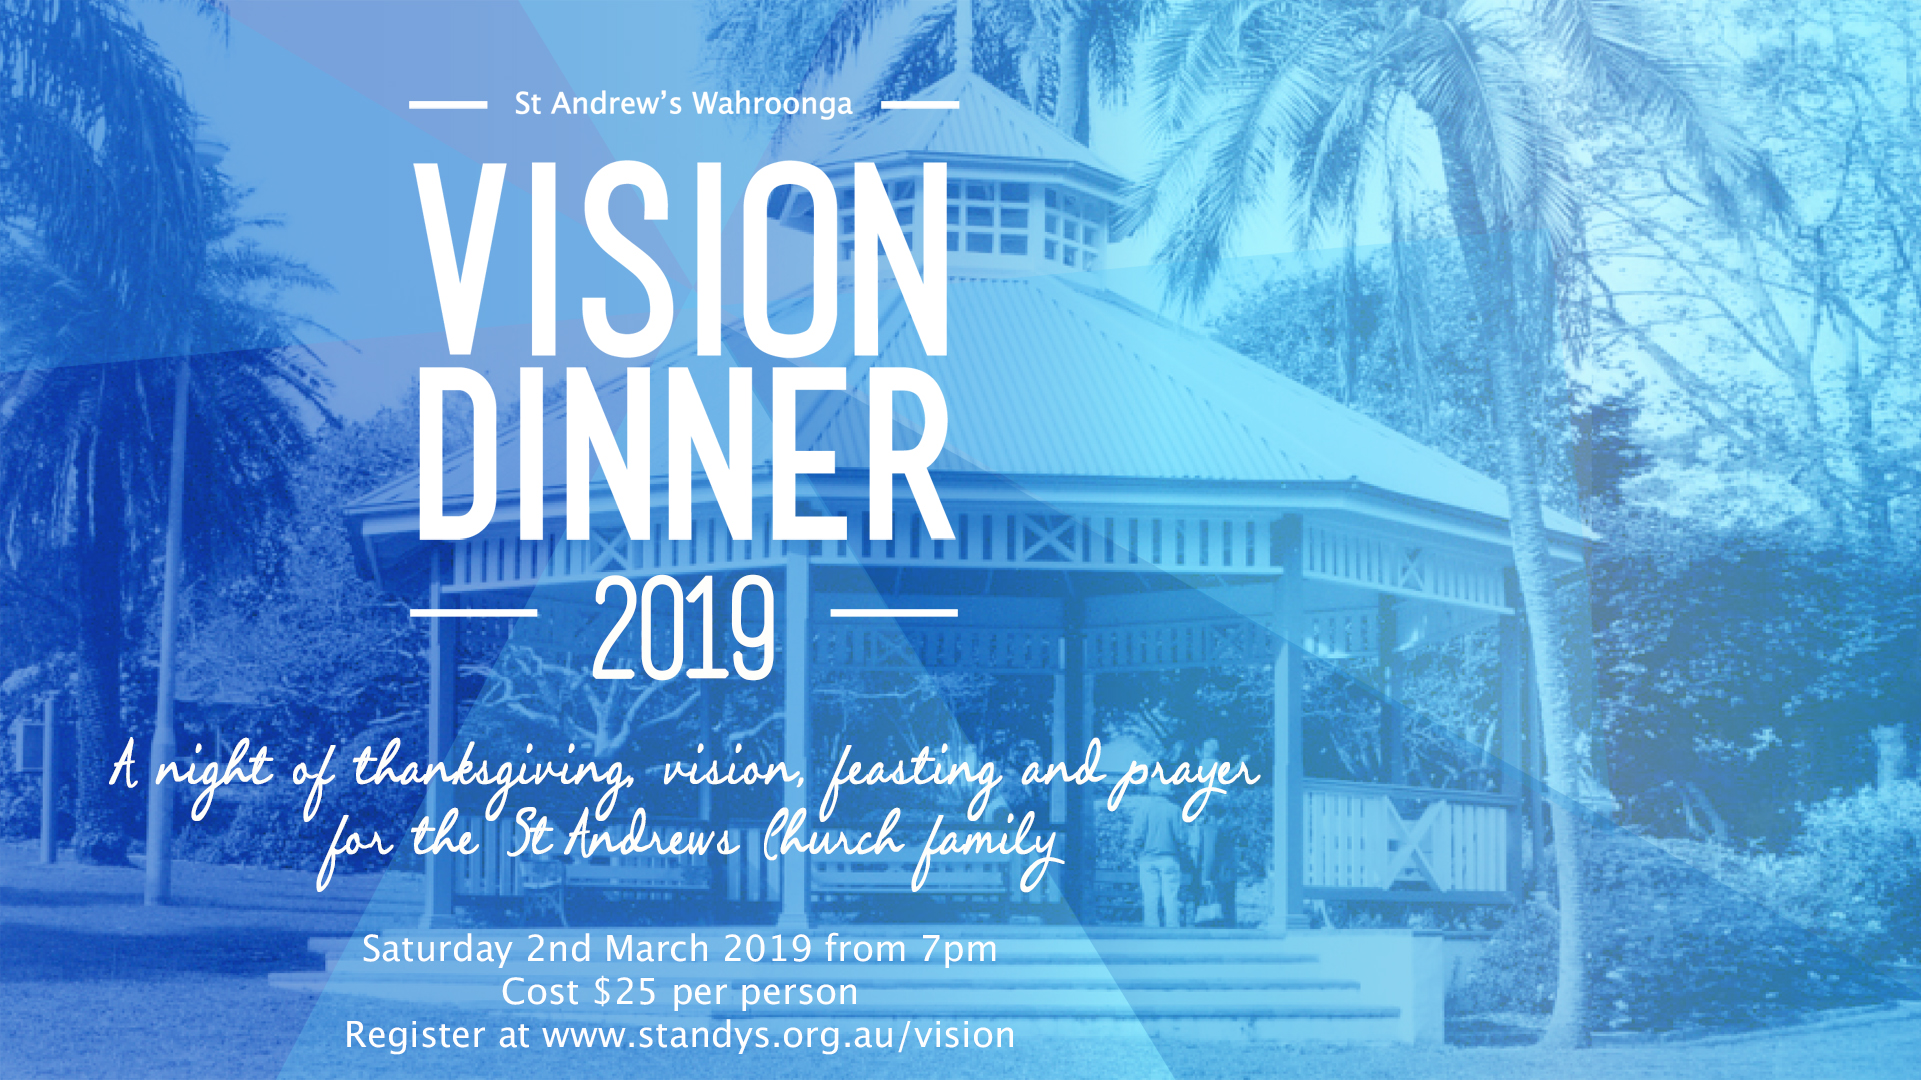 Vision Dinner 2019 | St Andrew's Anglican Church Wahroonga